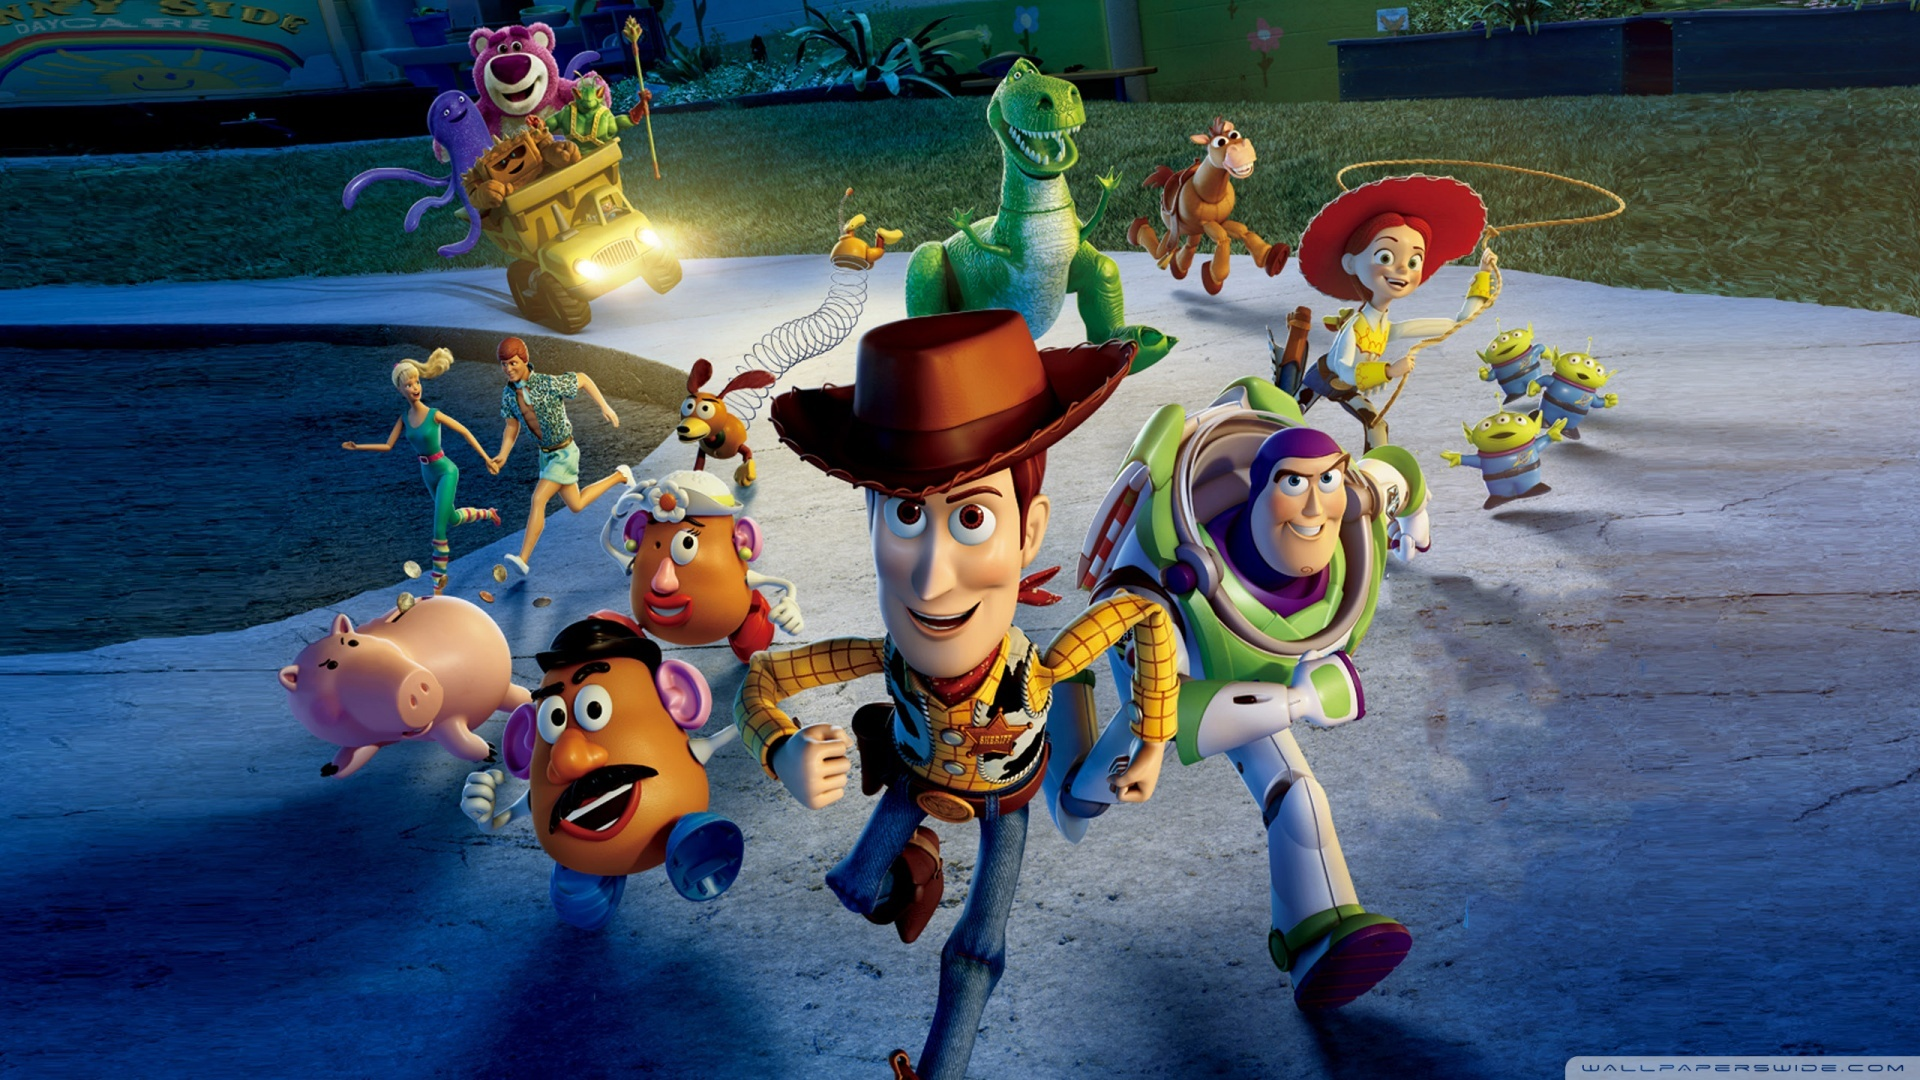 Free Download Toy Story 1 2 3 Wallpapers Hd 1920x1080